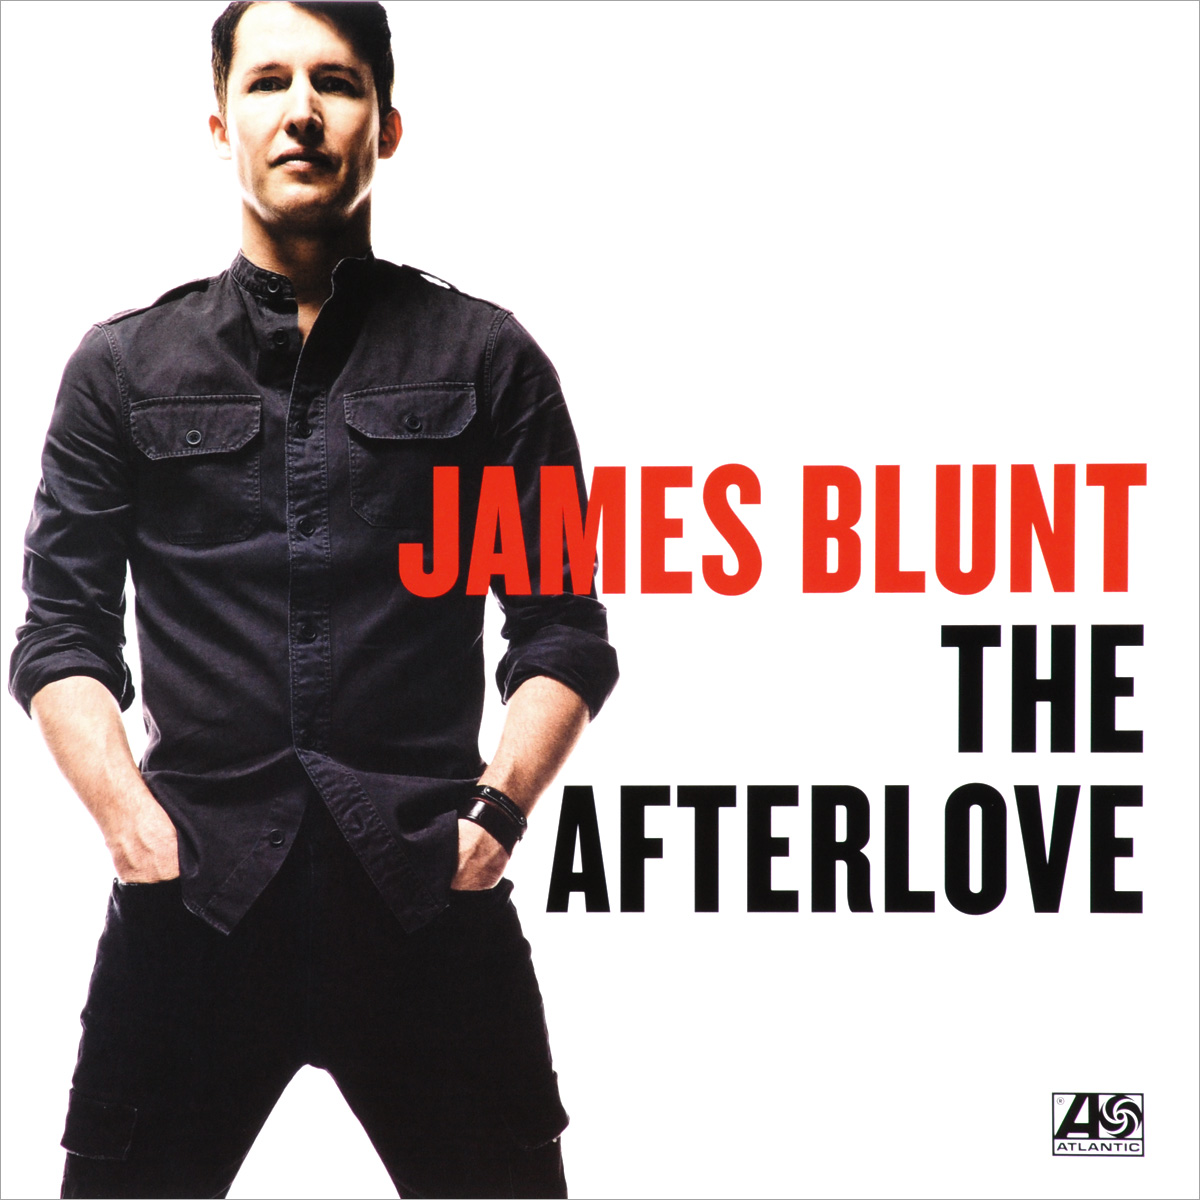 Джеймс Блант James Blunt. The Afterlove (LP) james blunt cap roig